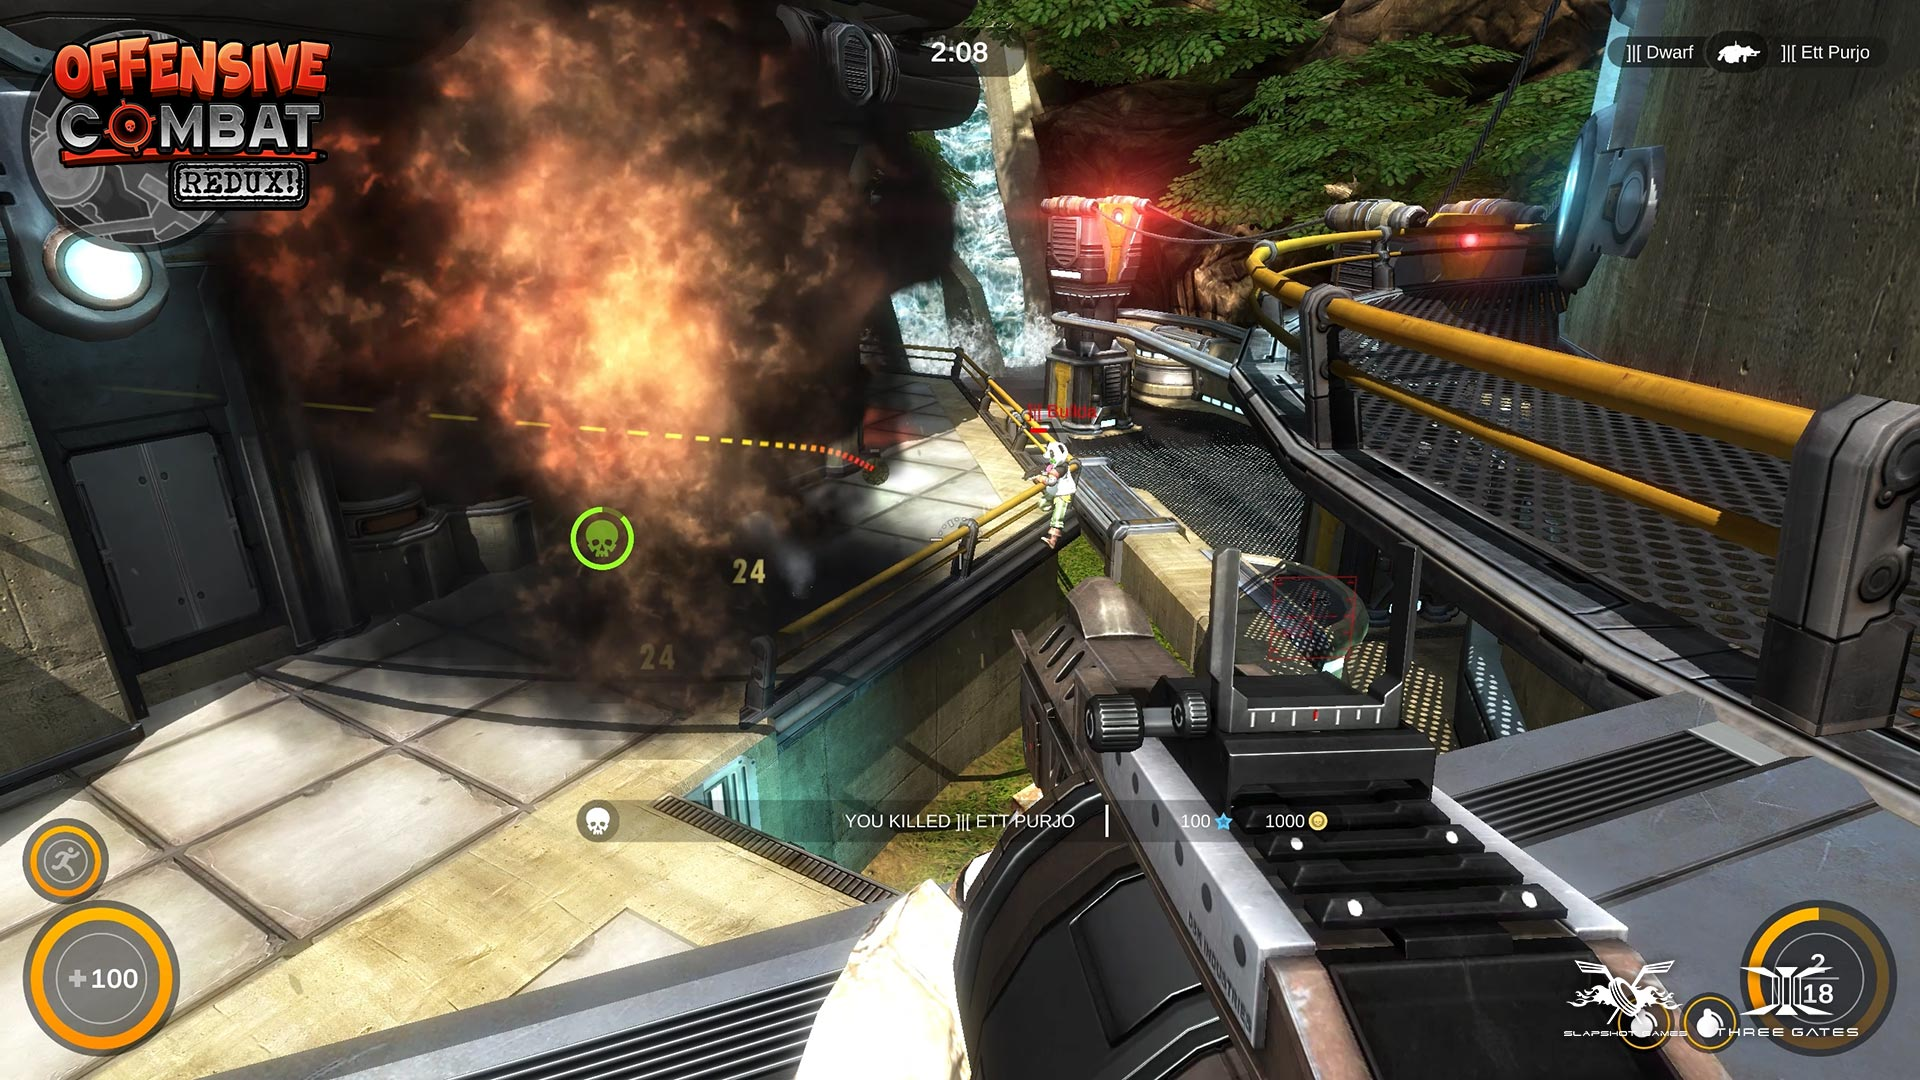 Offensive Combat Redux Screenshot